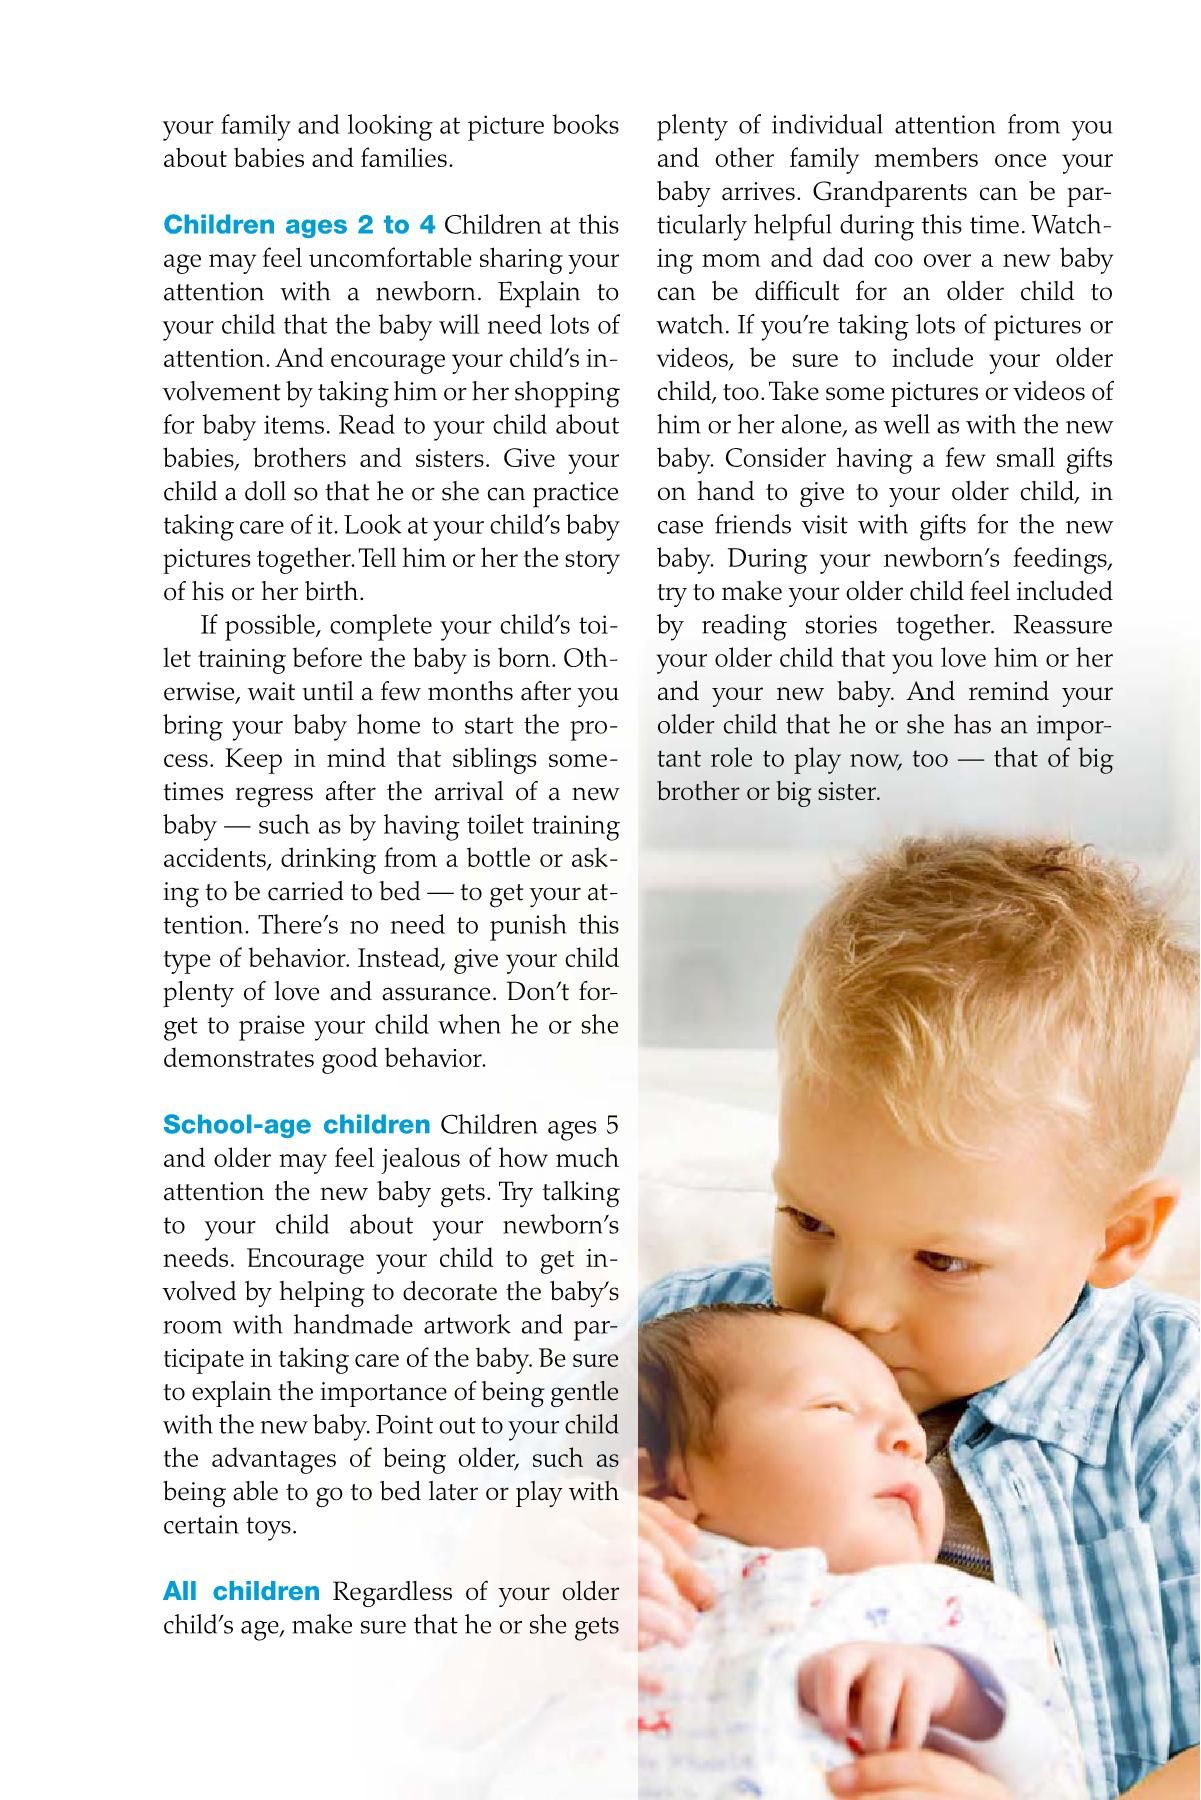 Mayo Clinic Guide To Your Baby S First Year From Doctors Who Are Parents Too Flip Book Pages 451 500 Pubhtml5